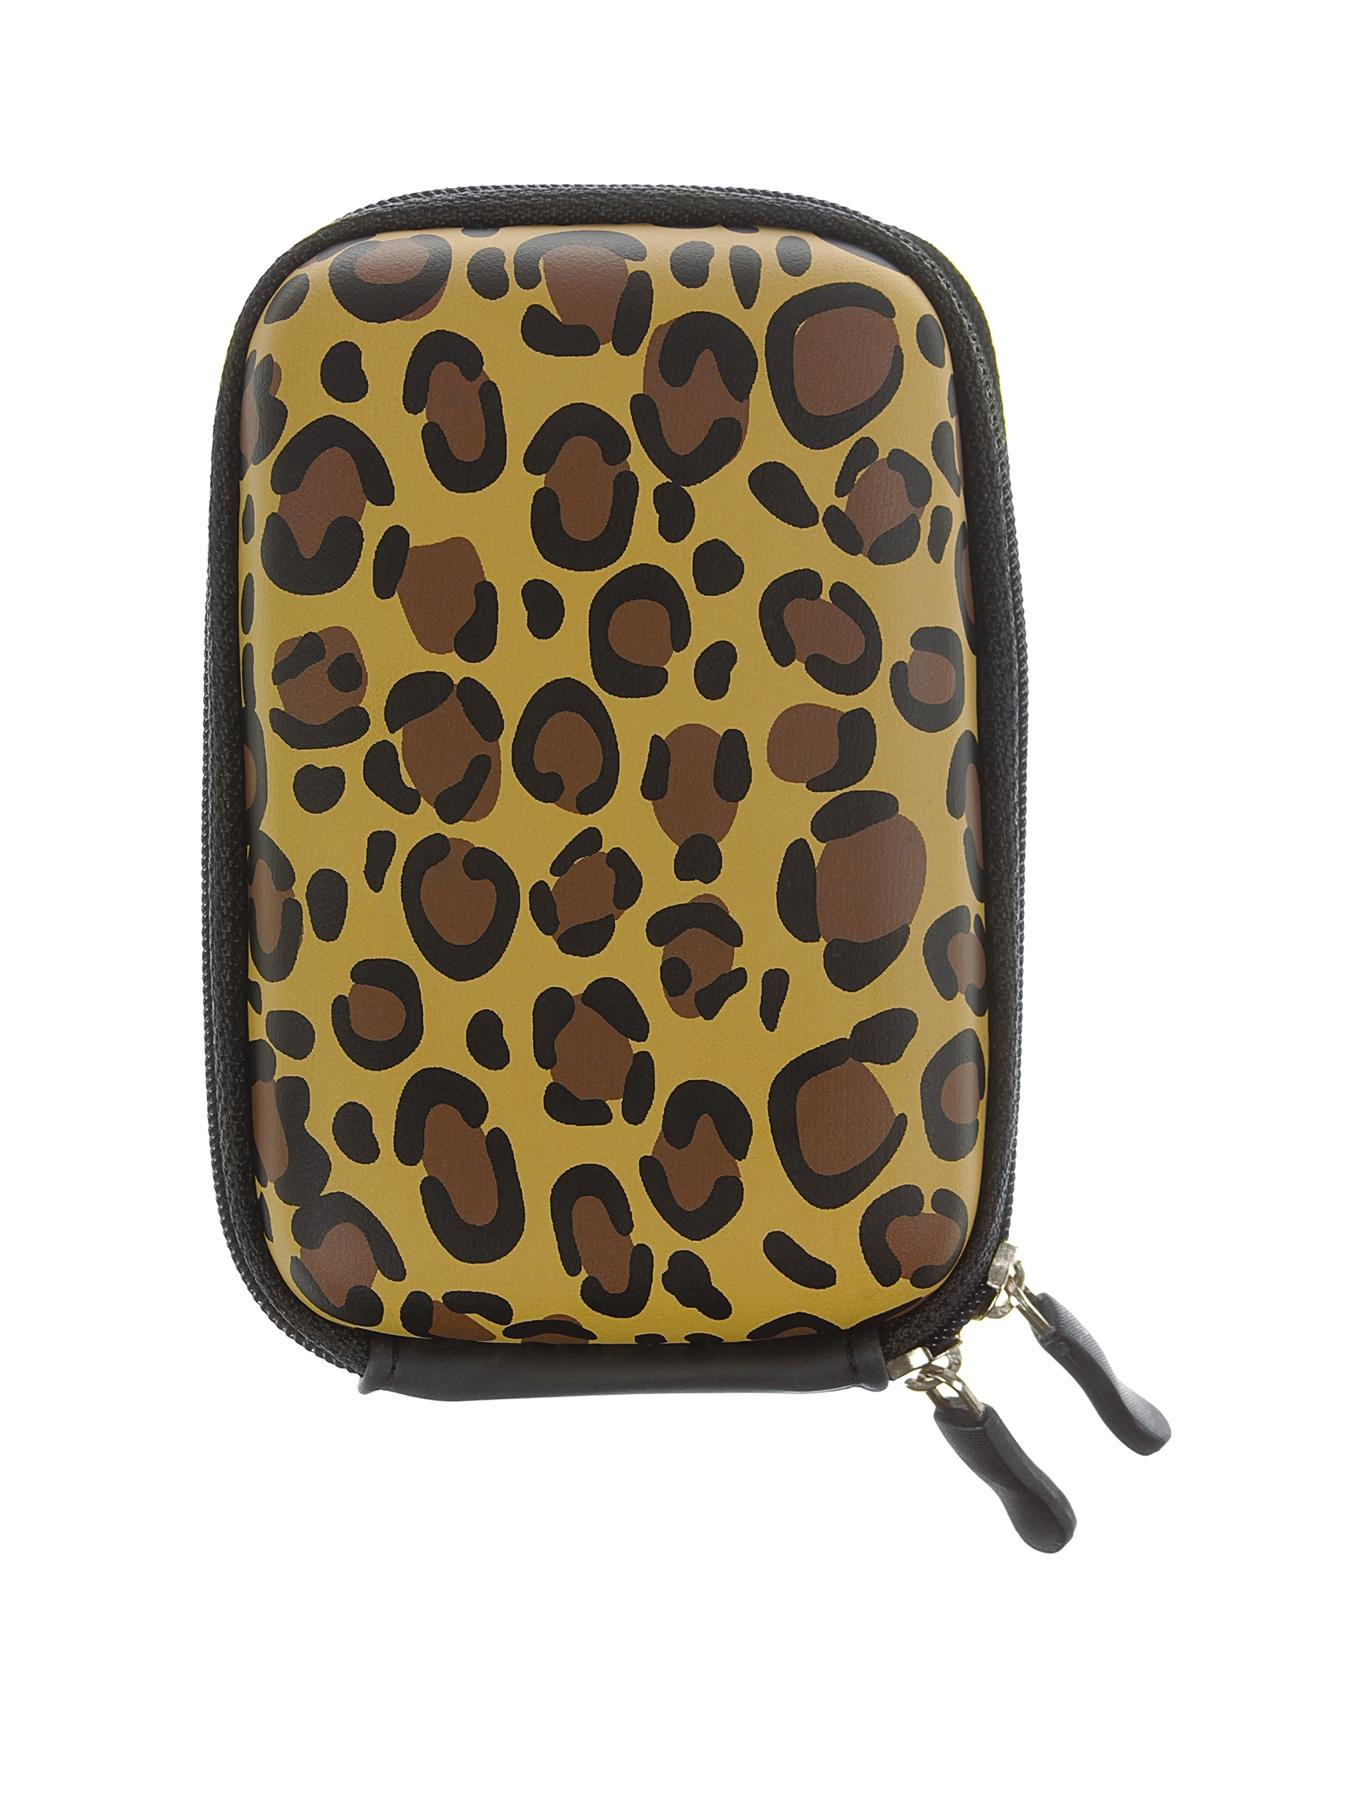 Trendz Compact Fashion Camera Case